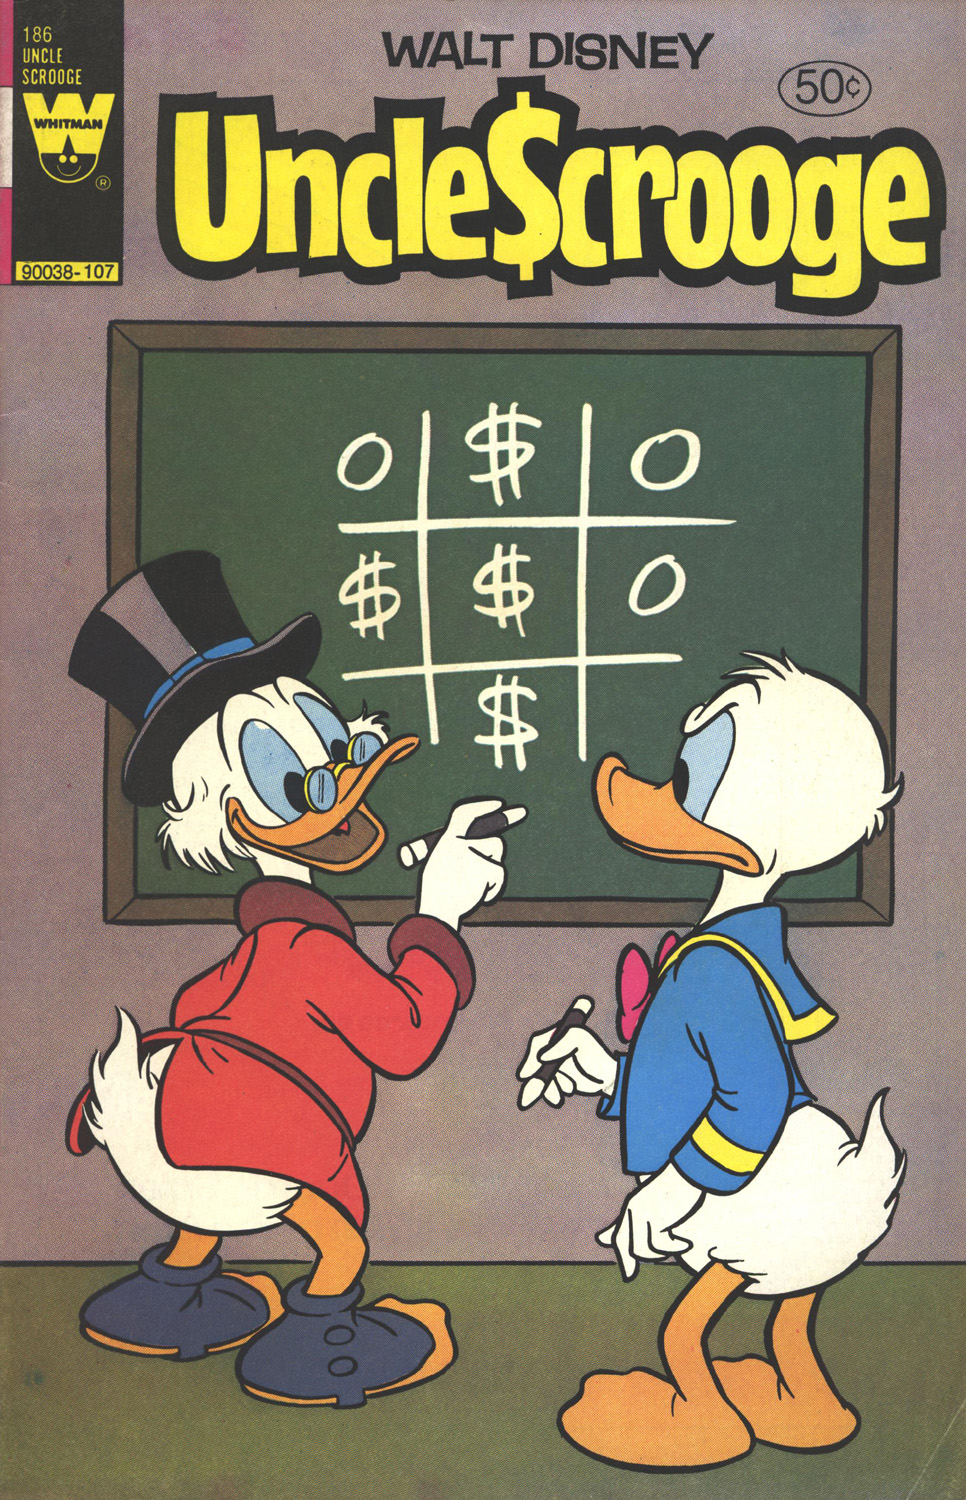 Read online Uncle Scrooge (1953) comic -  Issue #186 - 1